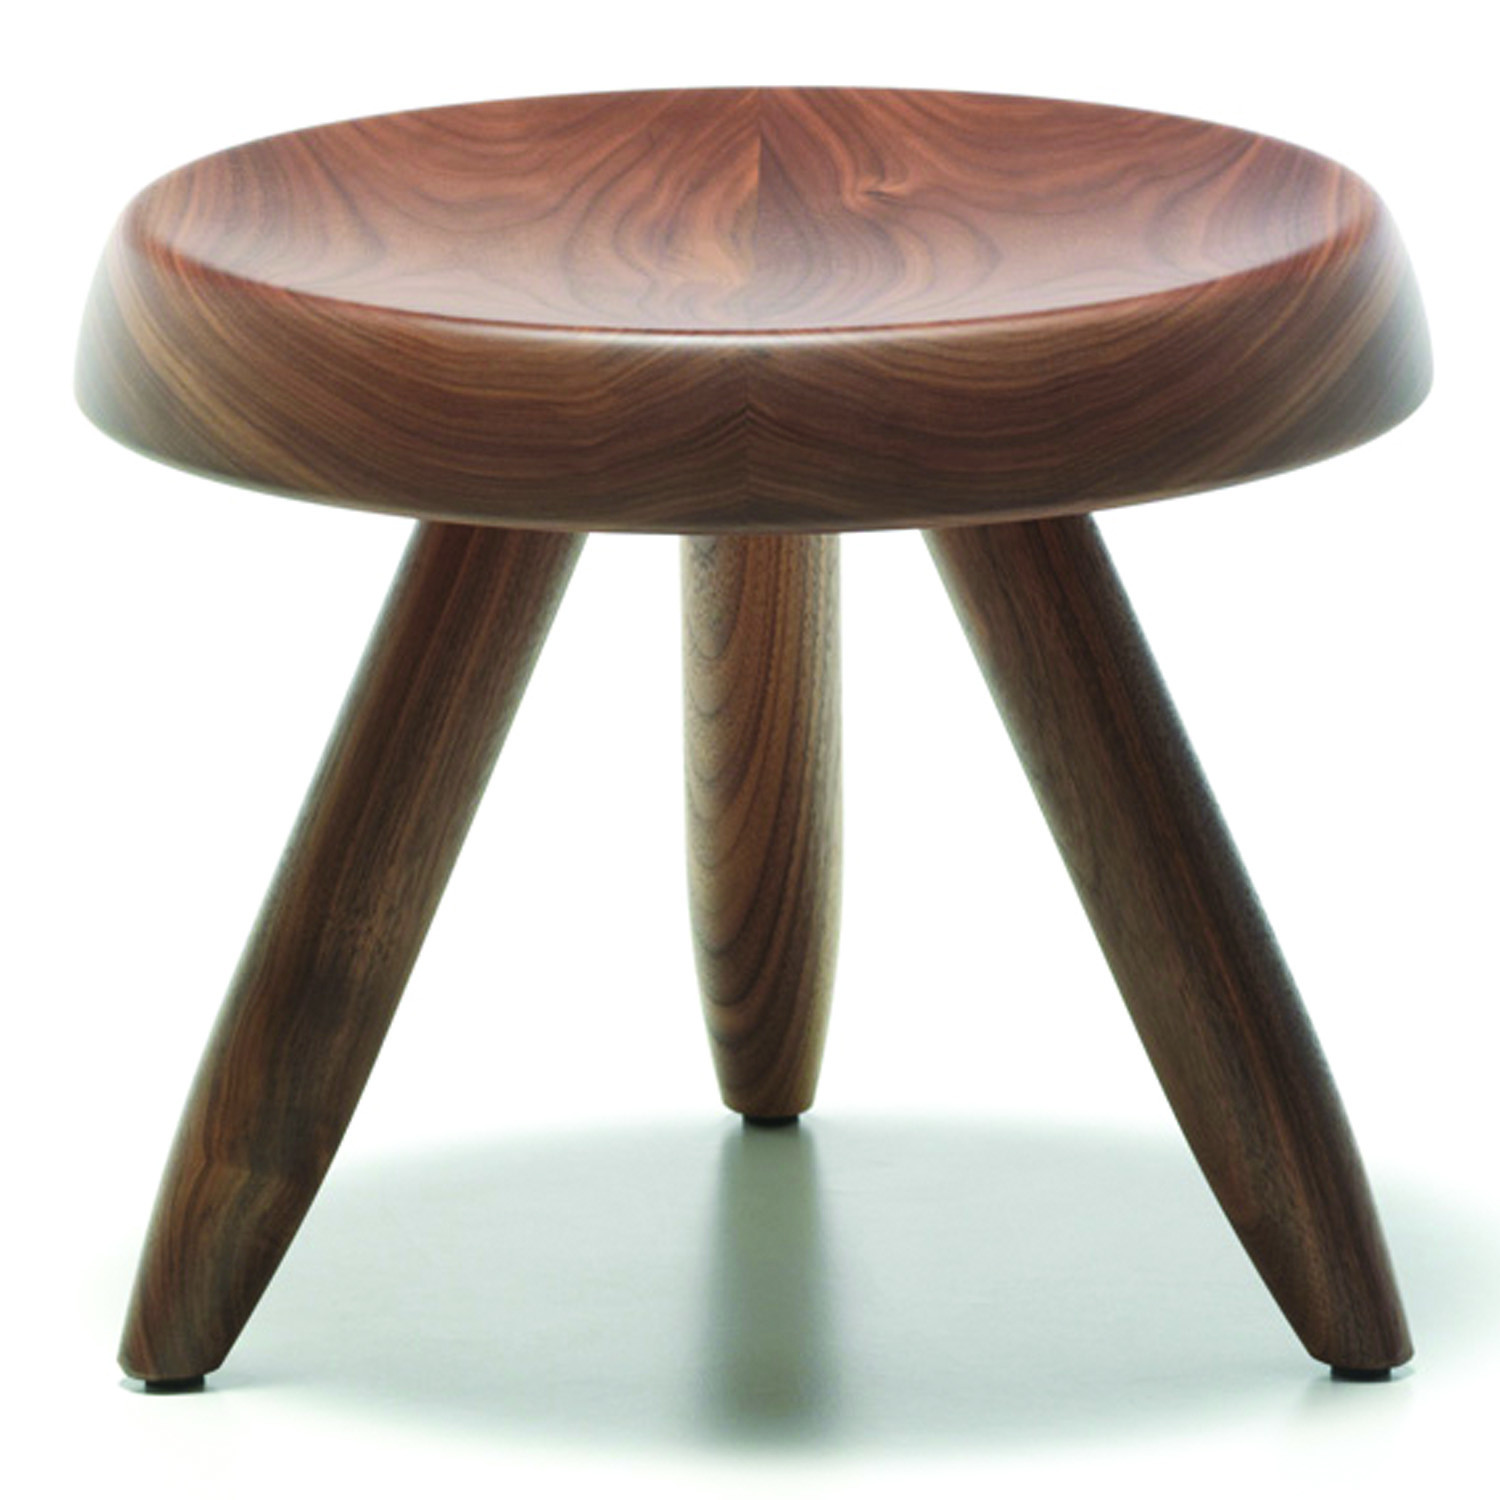 524 Tabouret Berger Stool Walnut